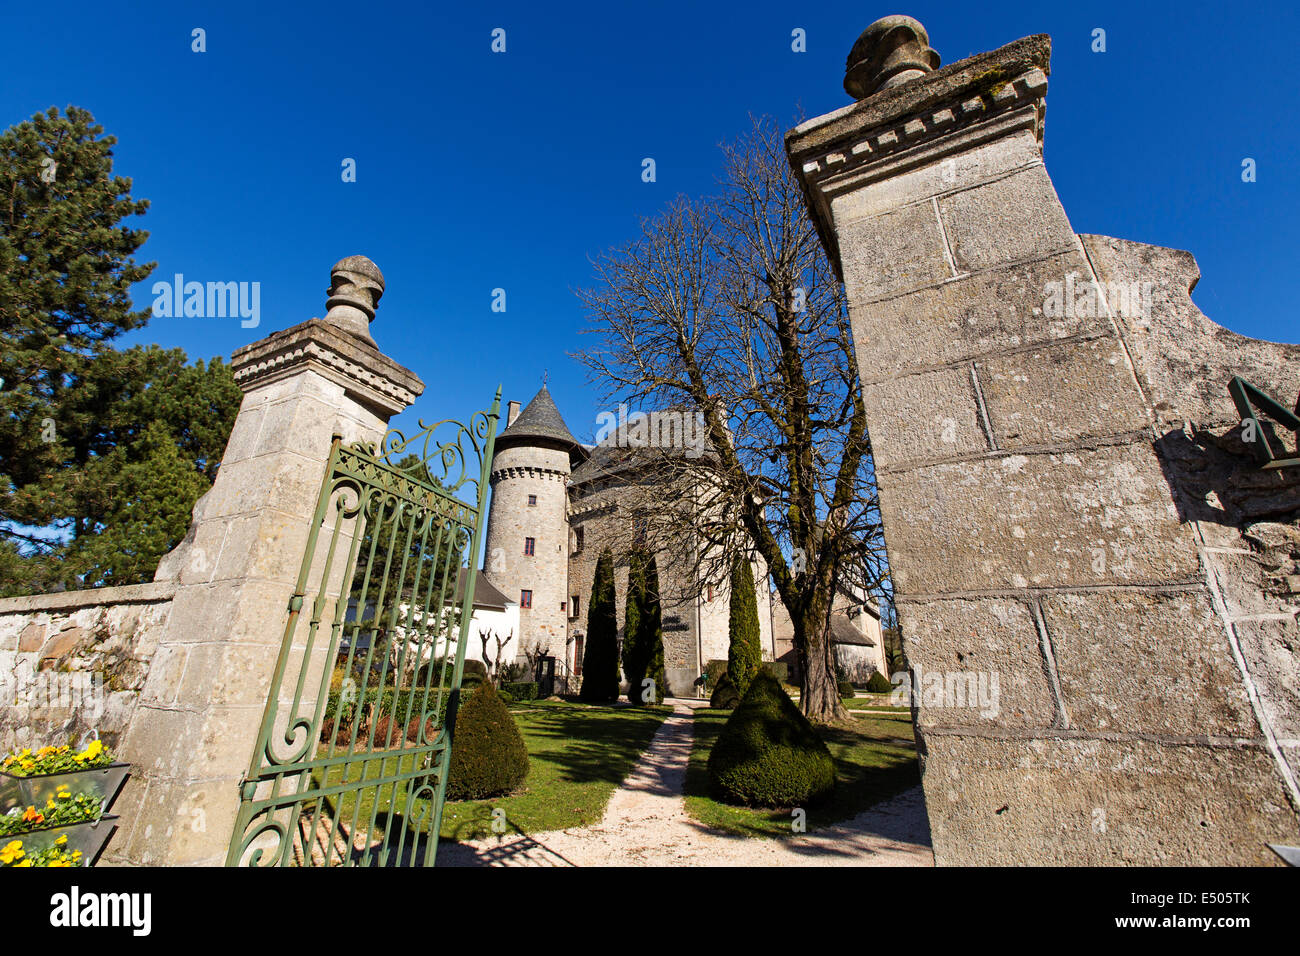 Castle Sainte-Fortunade Tulle France Stock Photo